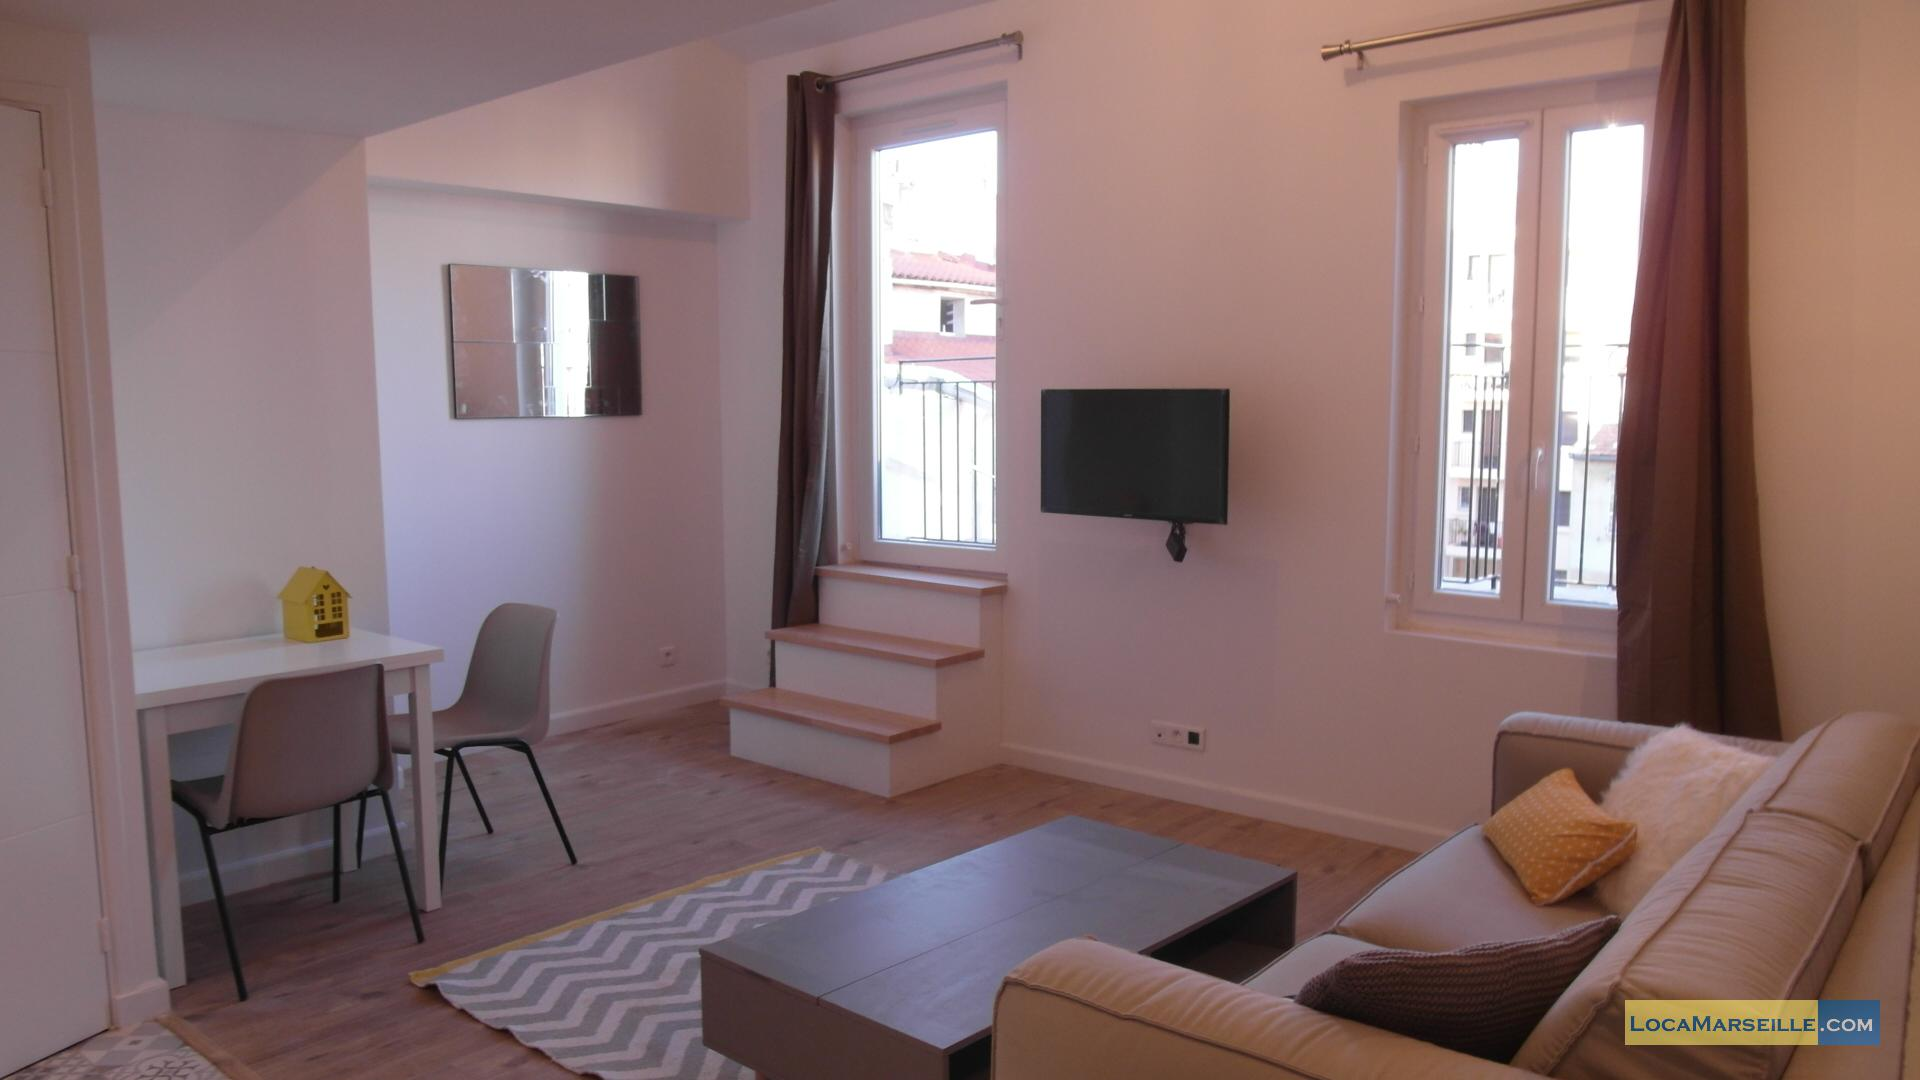 Furnished studio with terrace close to castellane for Furnished studio apartments